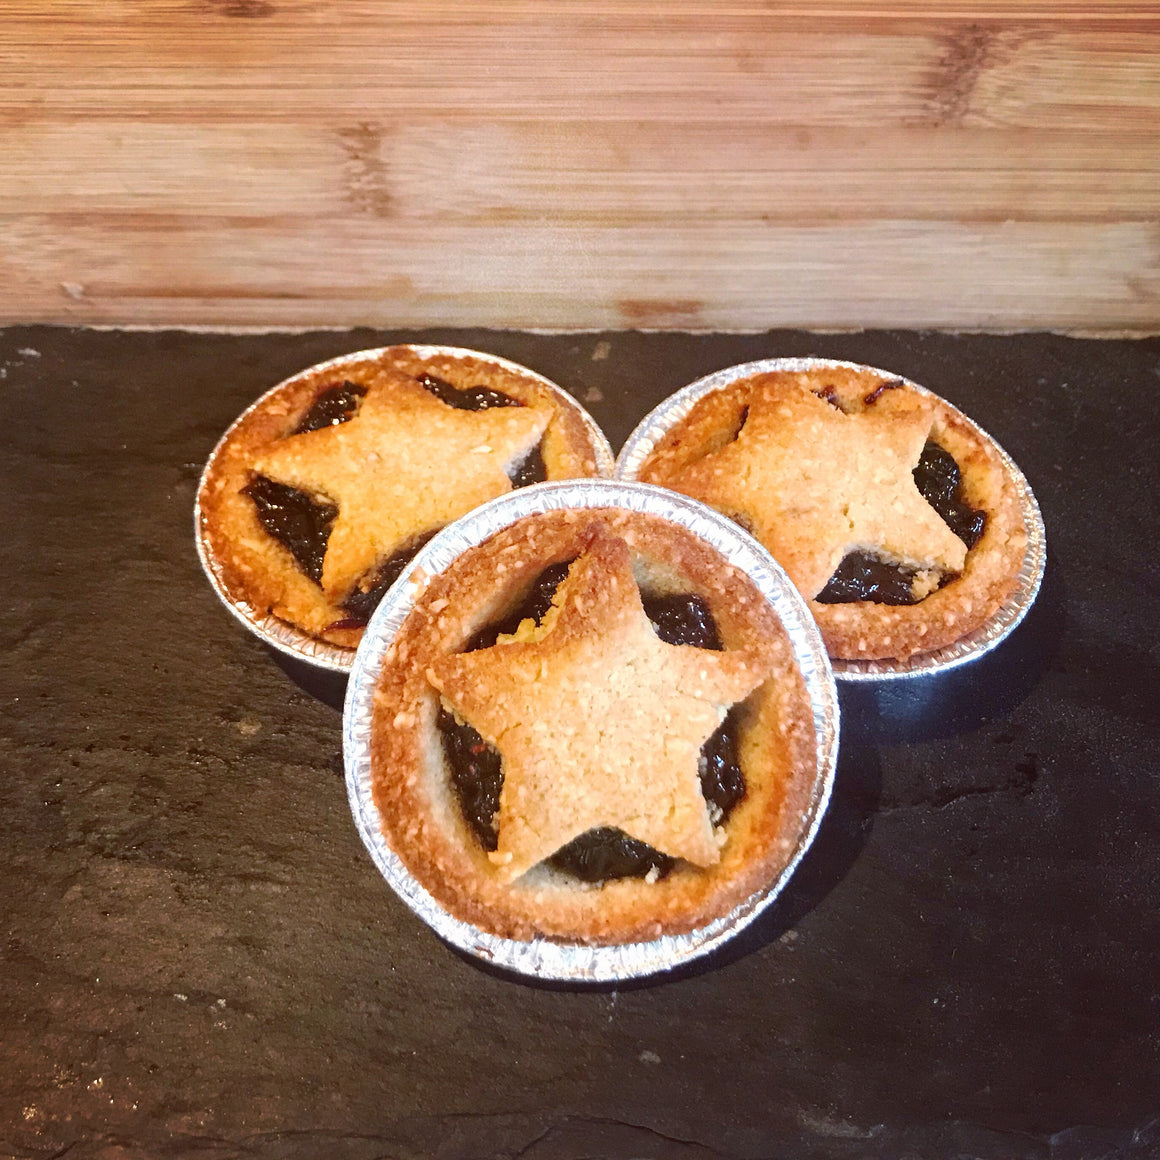 Keto mince pies / low carb Christmas pies 3 pcs - The Low Carb & Keto Bakery UK